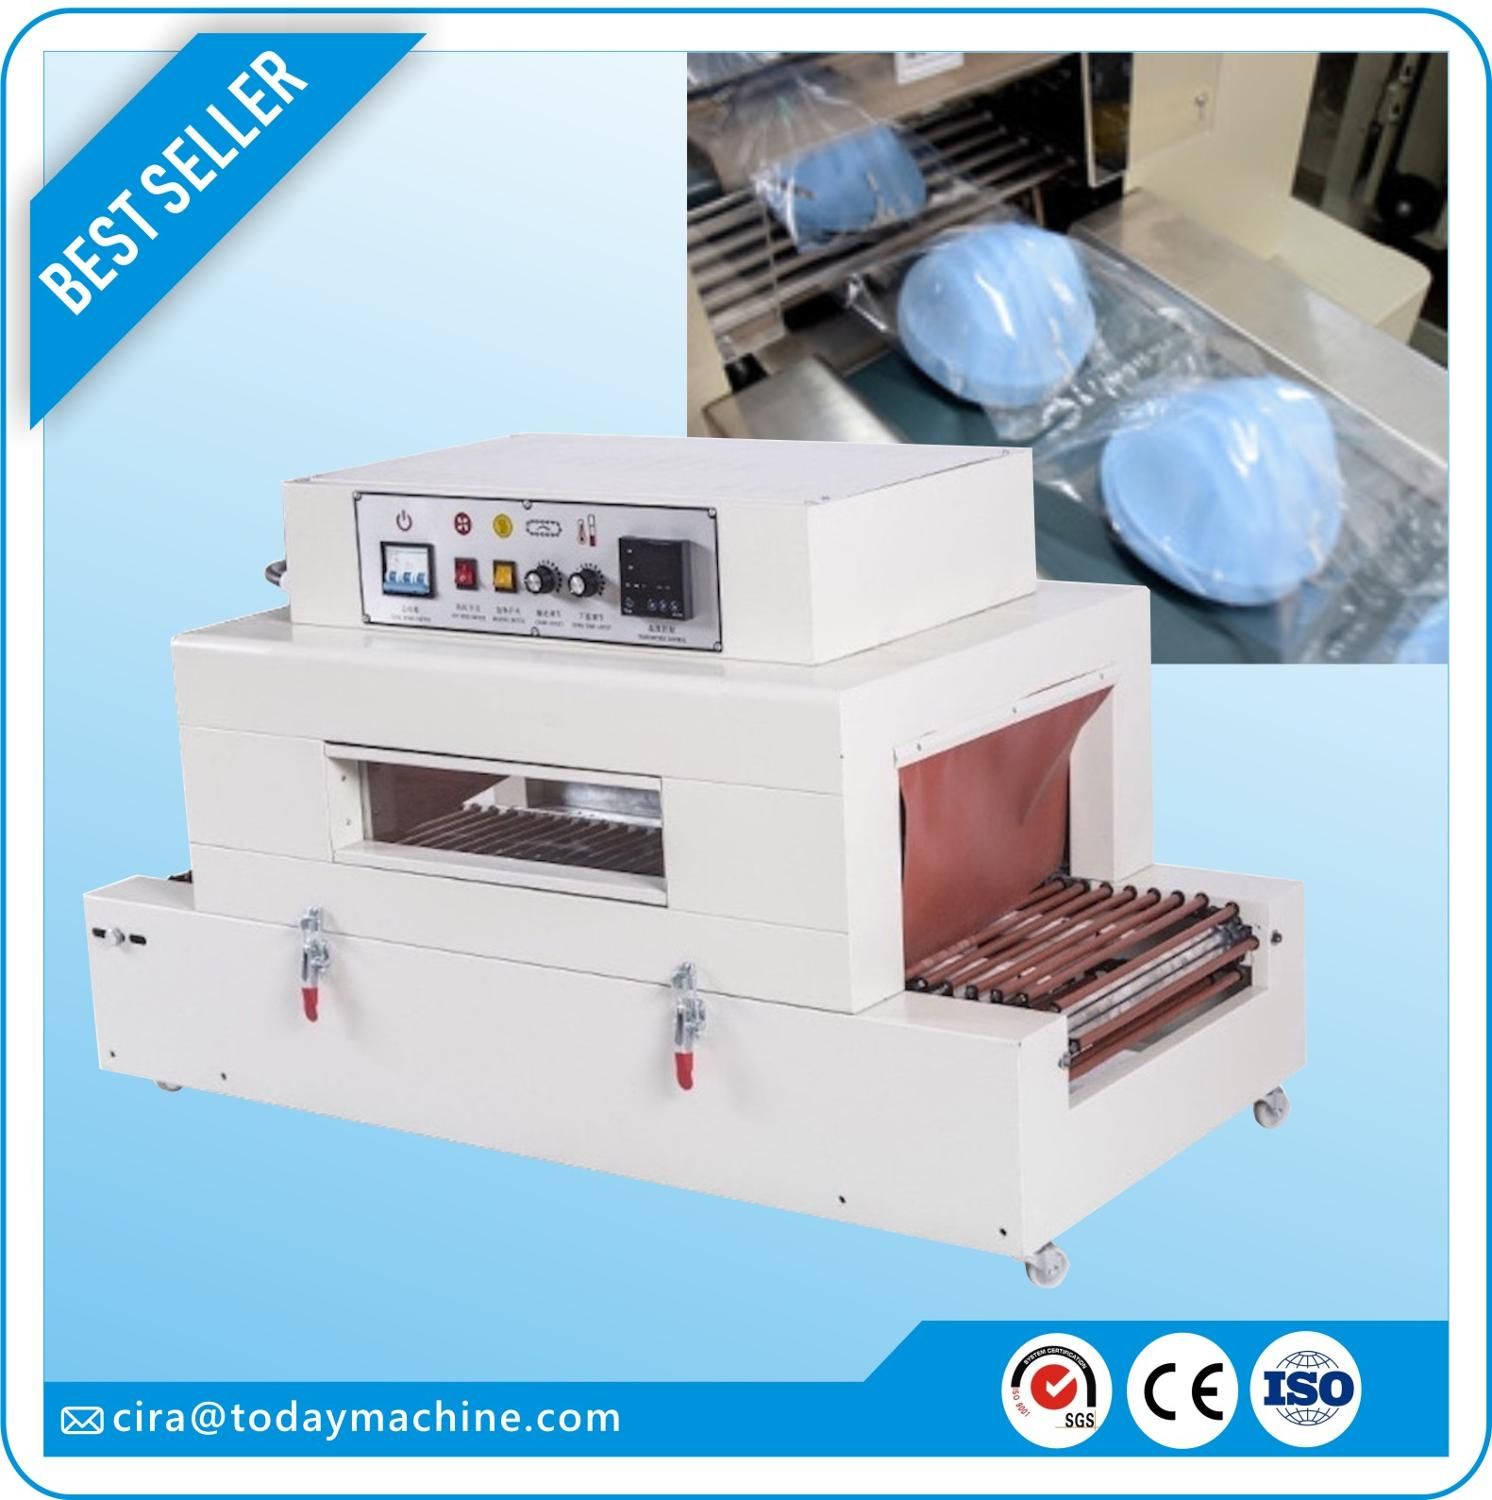 Disposable Masks Shrink Film Packaging Machine